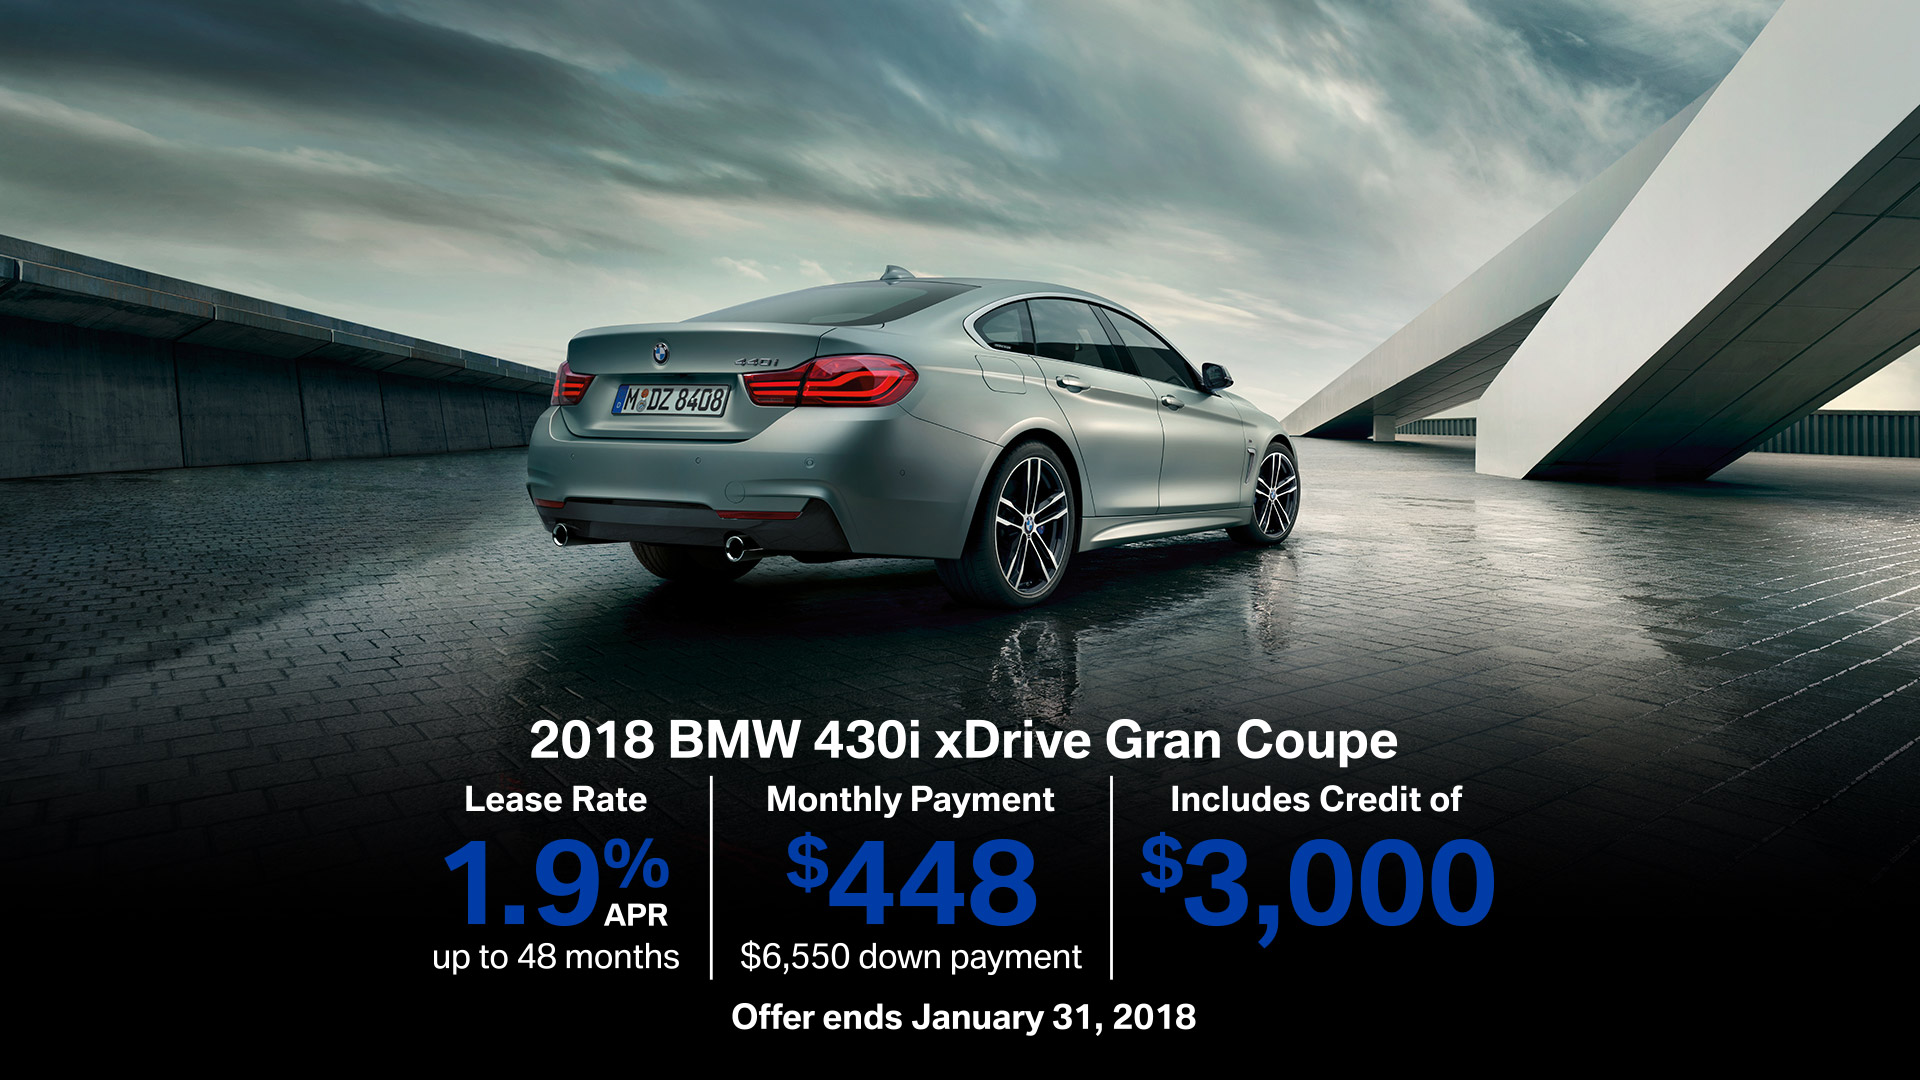 BMW-Screenscape-2017-Jan-430